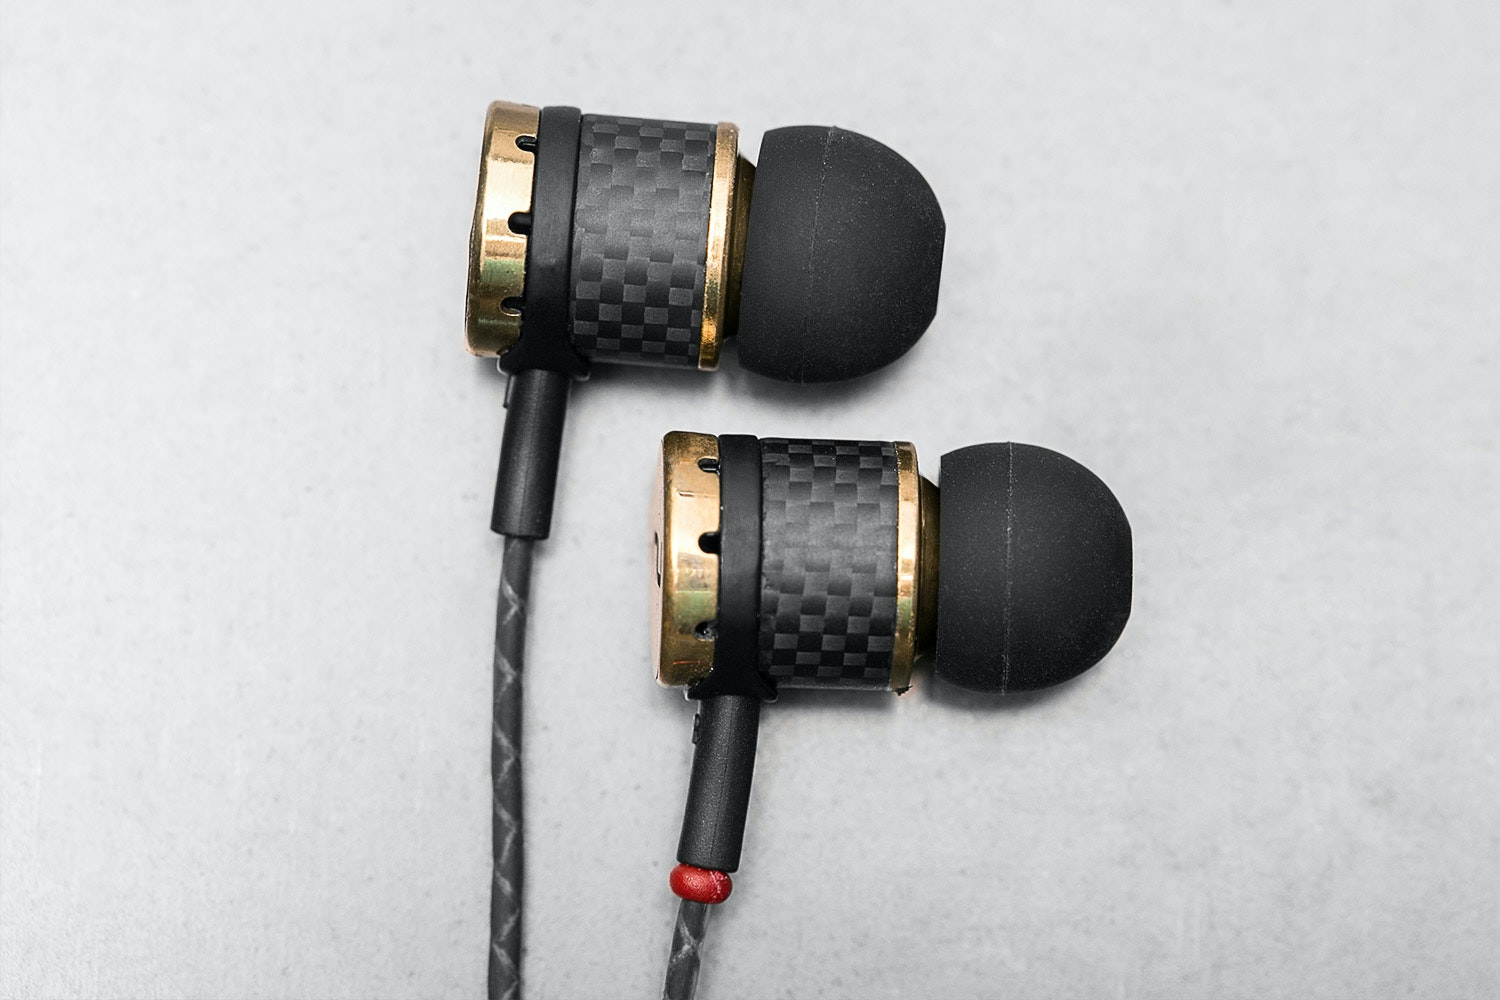 NuForce NE800M Earphones